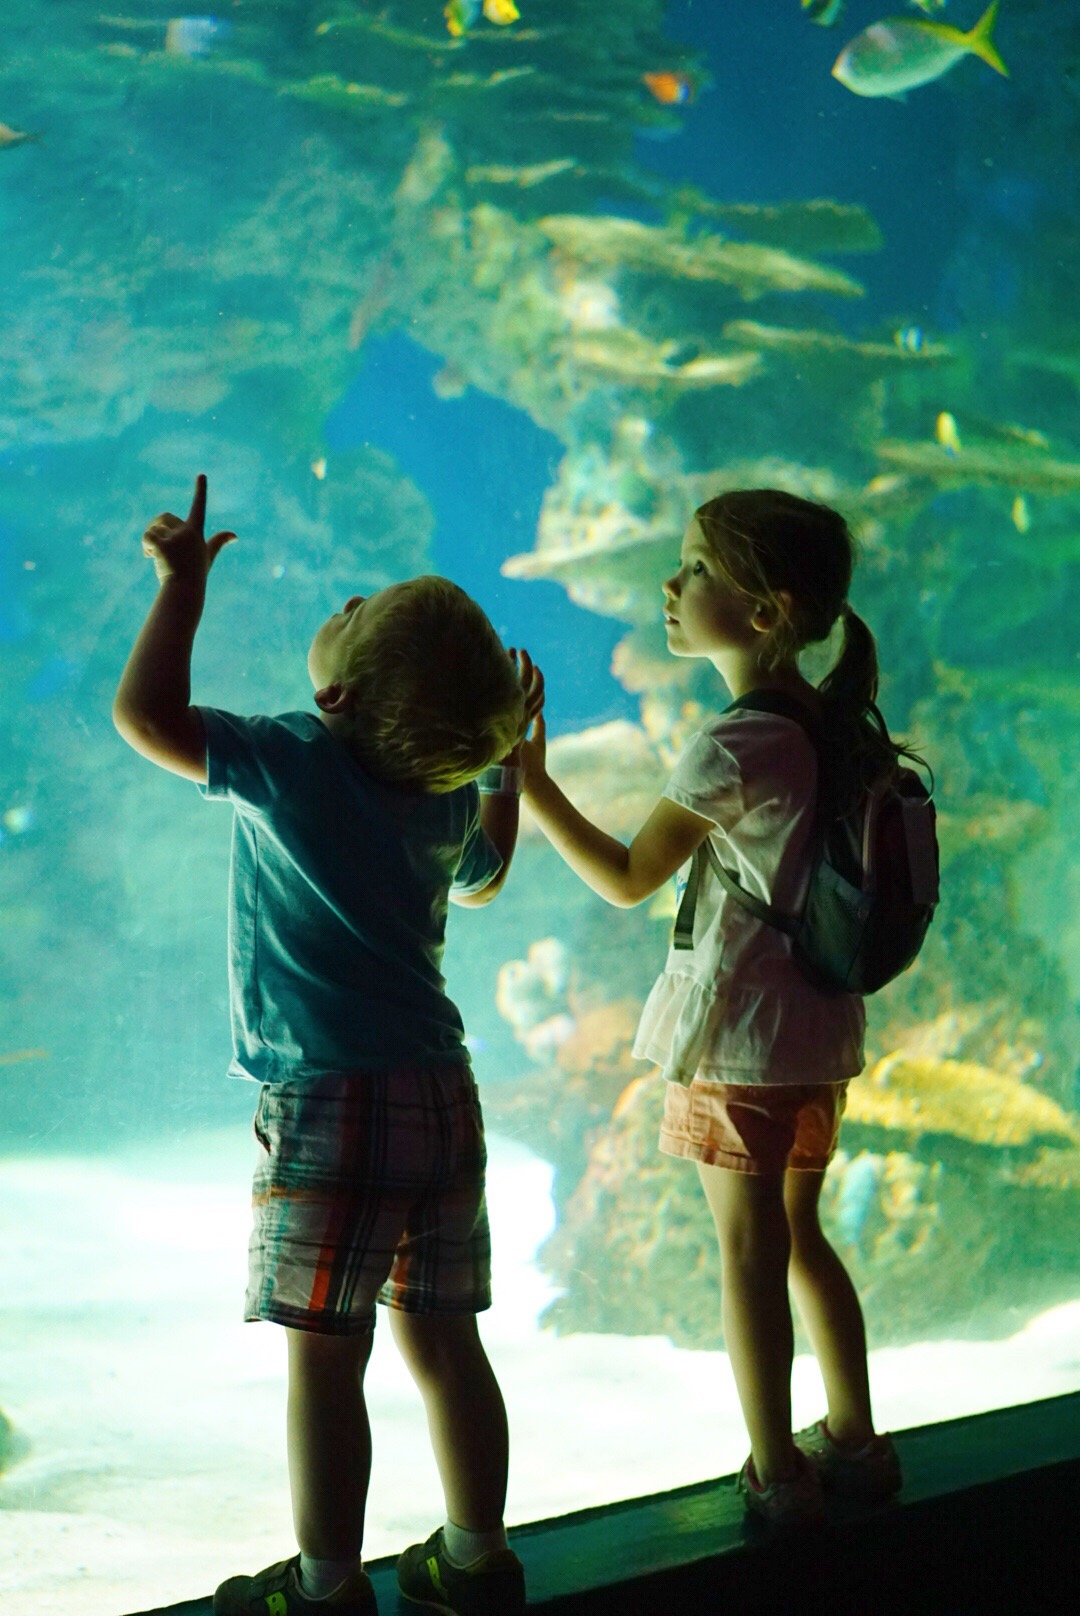 Gatlinburg TN - Visit Tennessee - Ripley's Aquarium of the Smokies- Fun Things to Do in Gatlinburg, TN With Kids - Gatlinburg attractions and family friendly places via Misty Nelson travel blogger, family travel blog @frostedevents